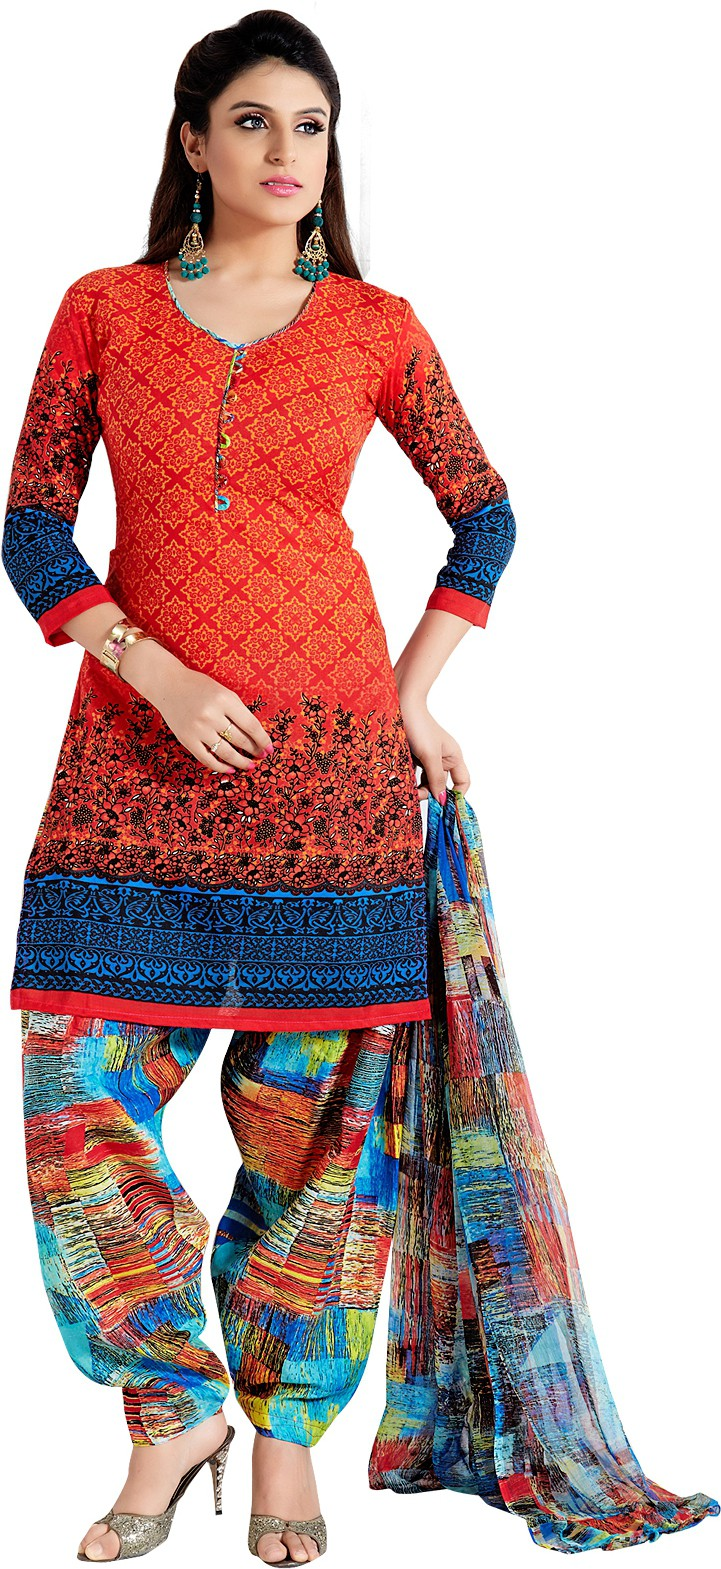 Flipkart - Dress Materials Minimum 70% Off